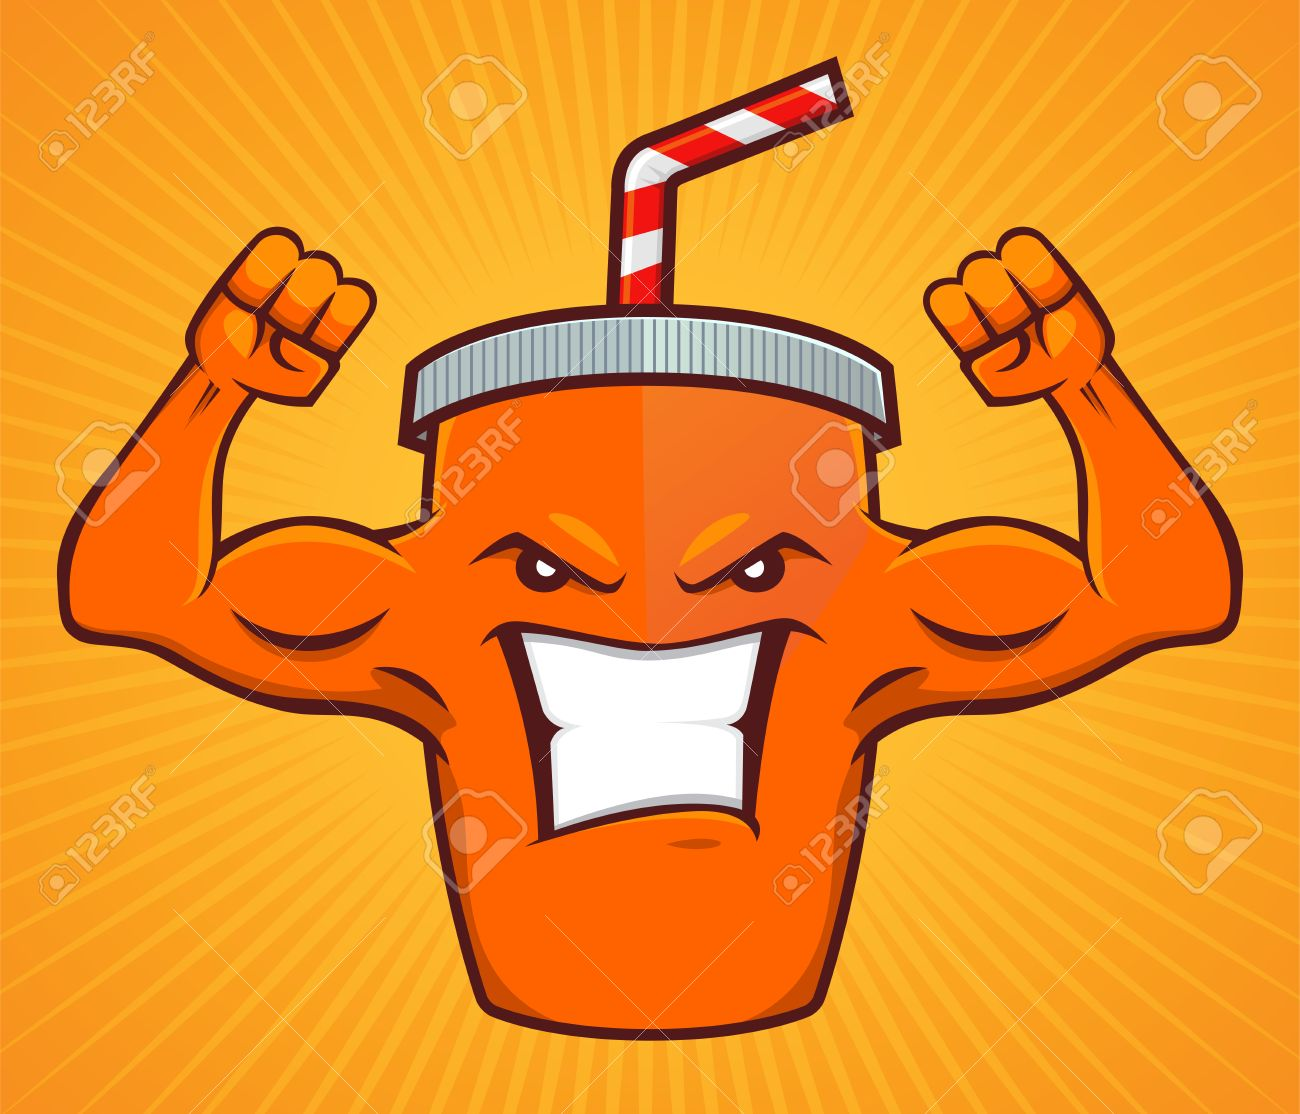 Cartoon character of a energy drink, with strong muscular arm - 55027149